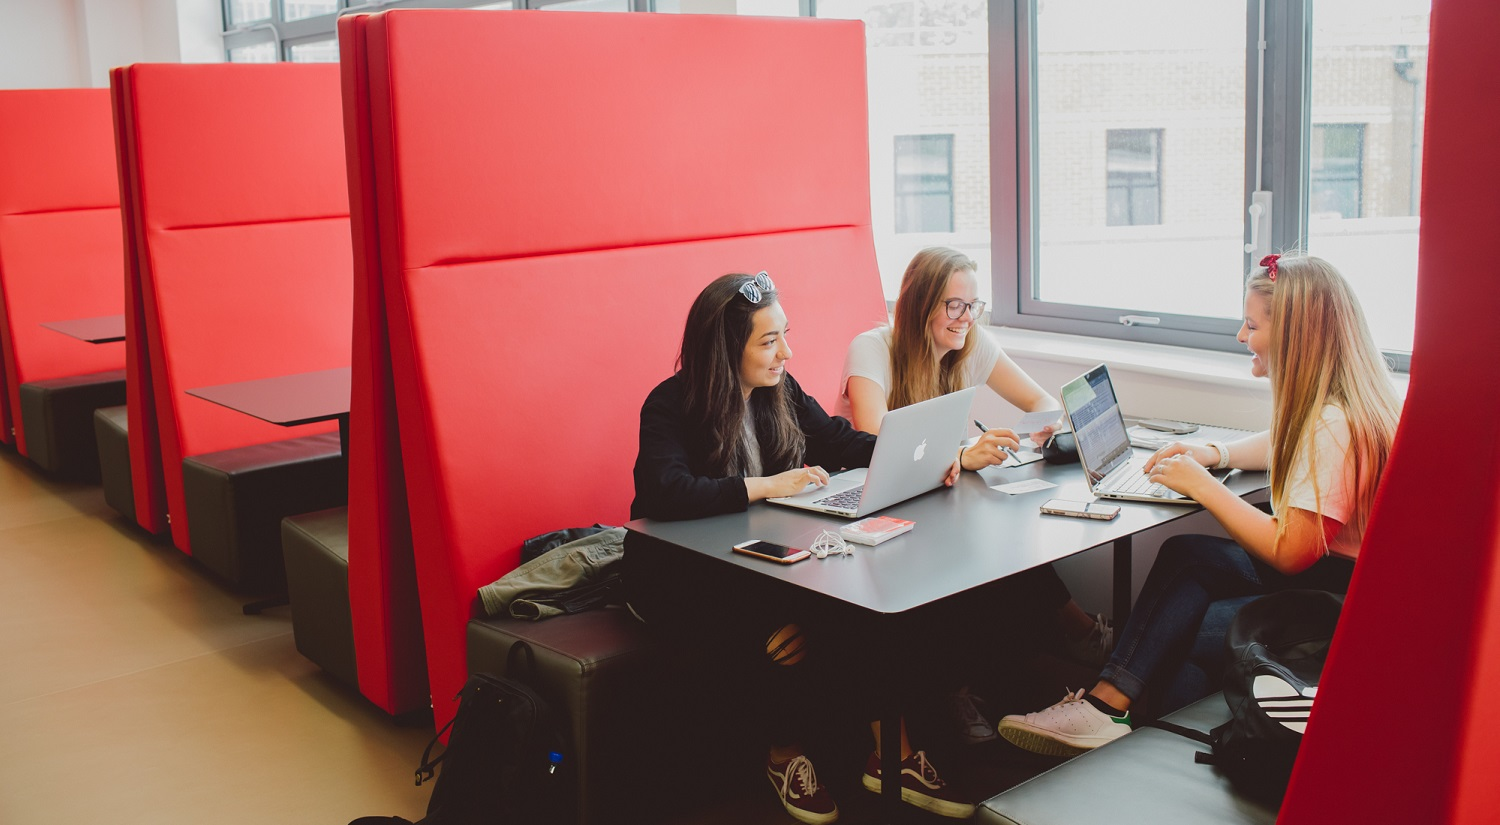 Three students sitting around a table with laptops and bags.